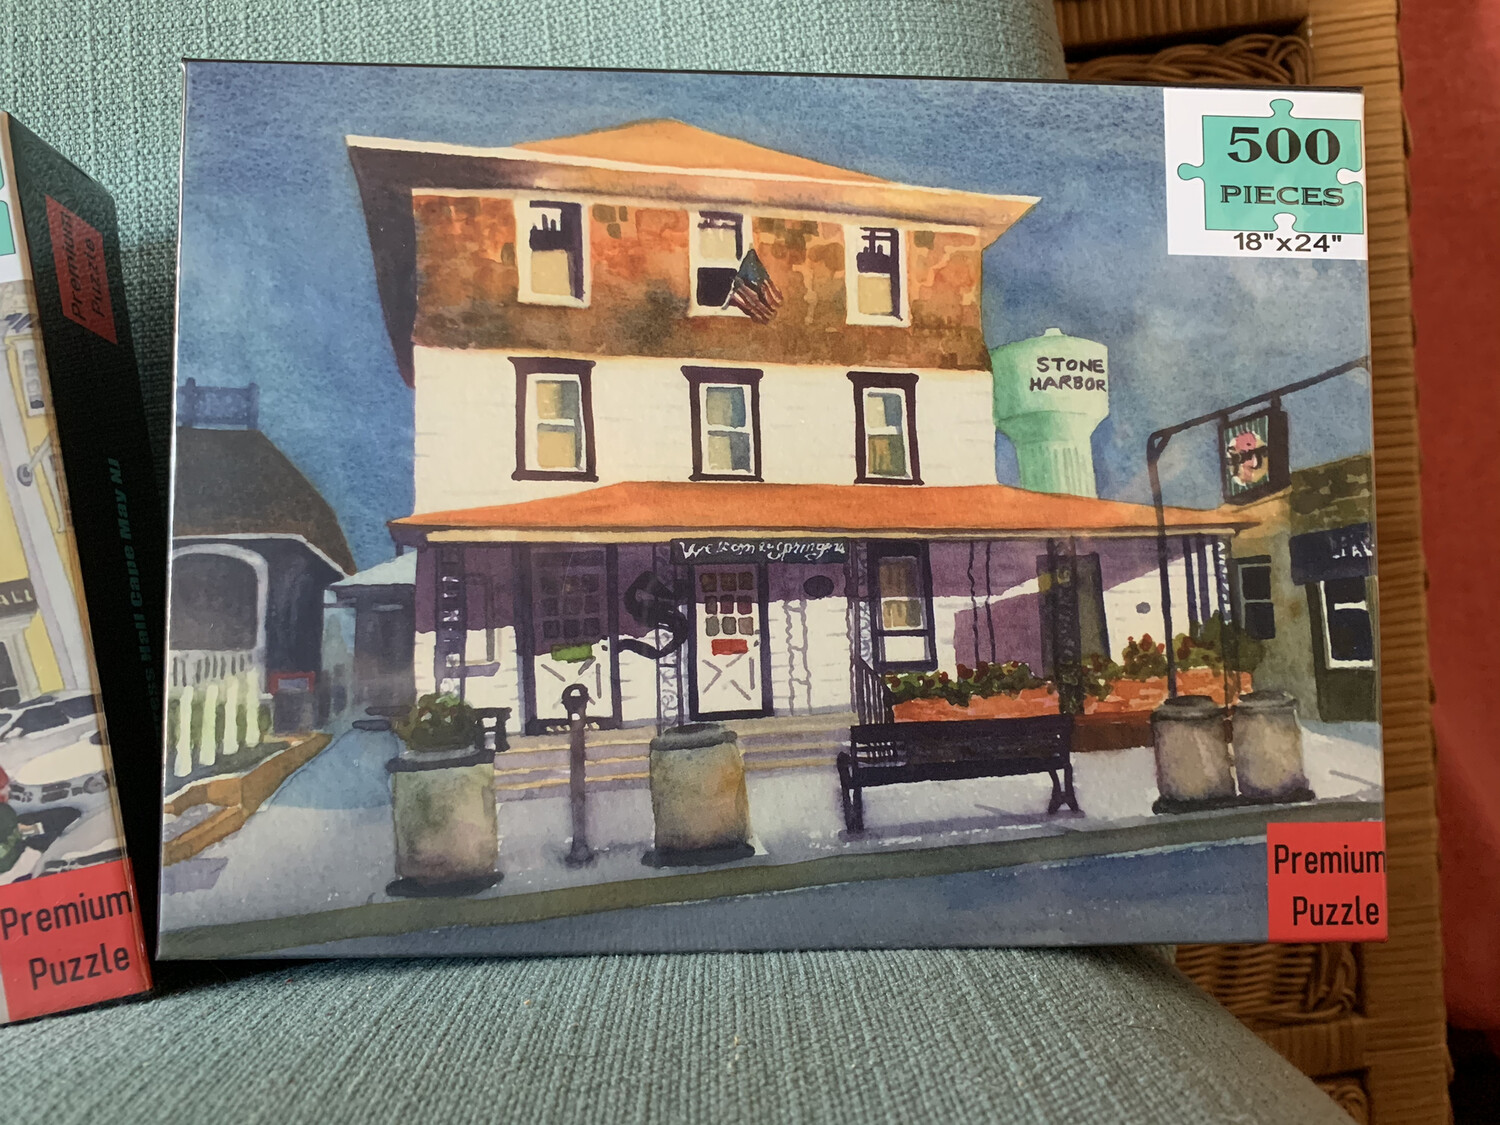 """PUZZLE - 500 Piece Springer's Ice Cream Stone Harbor New Jersey Puzzle - Watercolor art by Brenda Ann - Assembled size 18""""x24"""""""